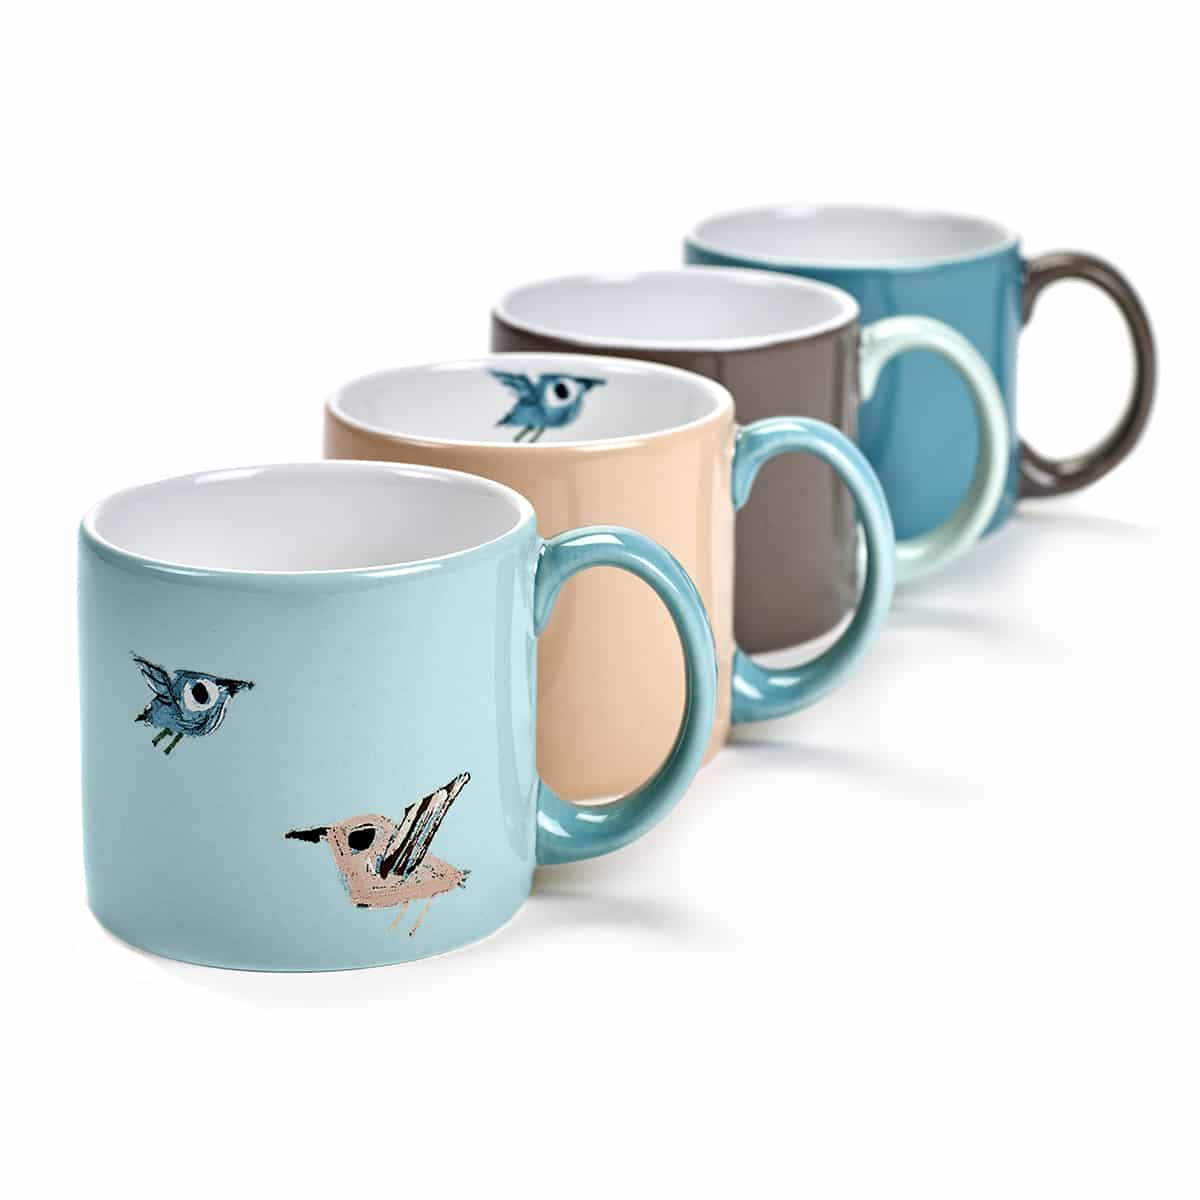 mug fiep birds jansen+co zeeloft